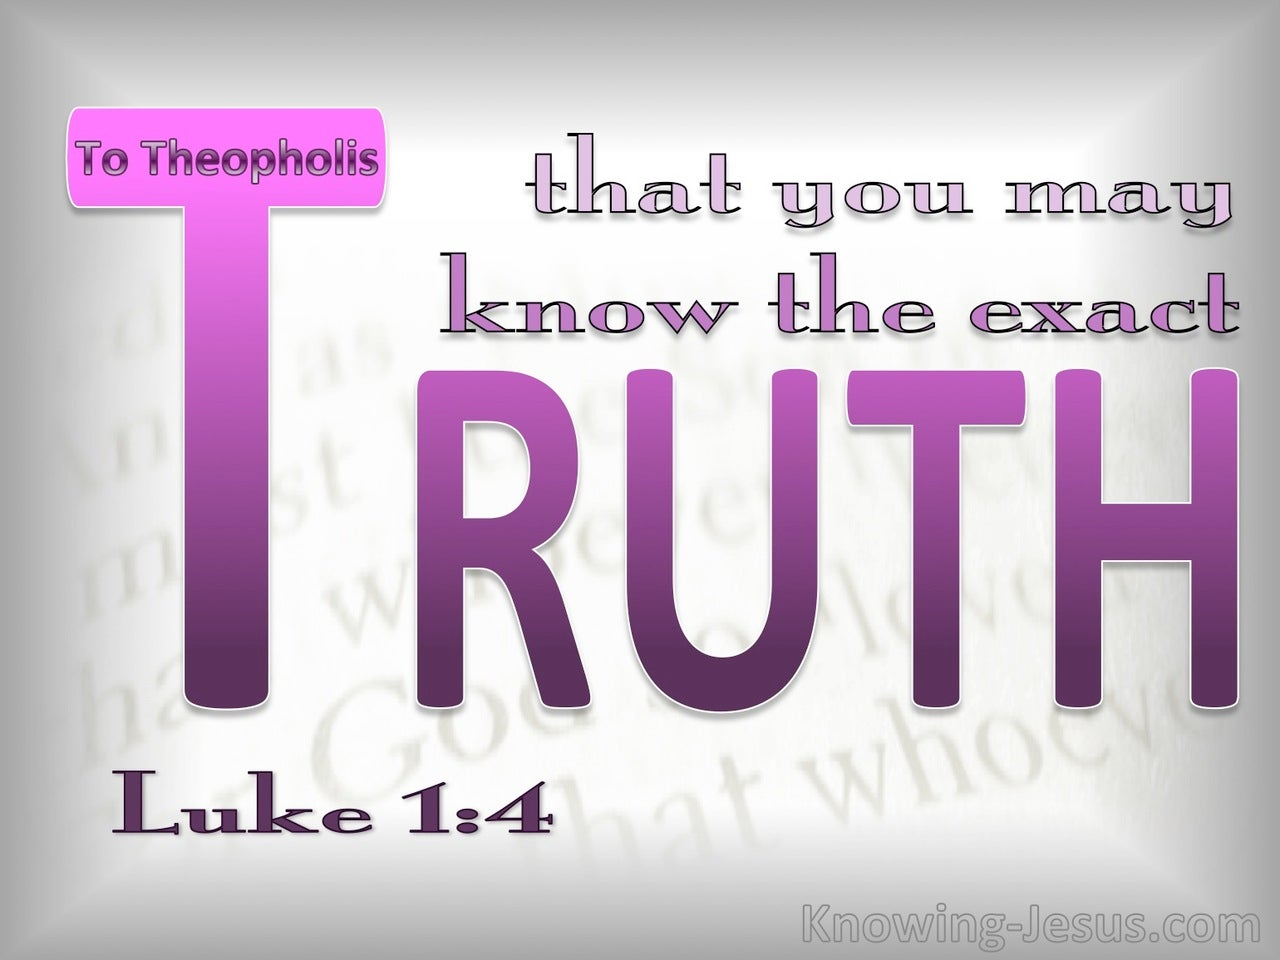 Luke 1:4 That You May Know The Exact Truth (pink)